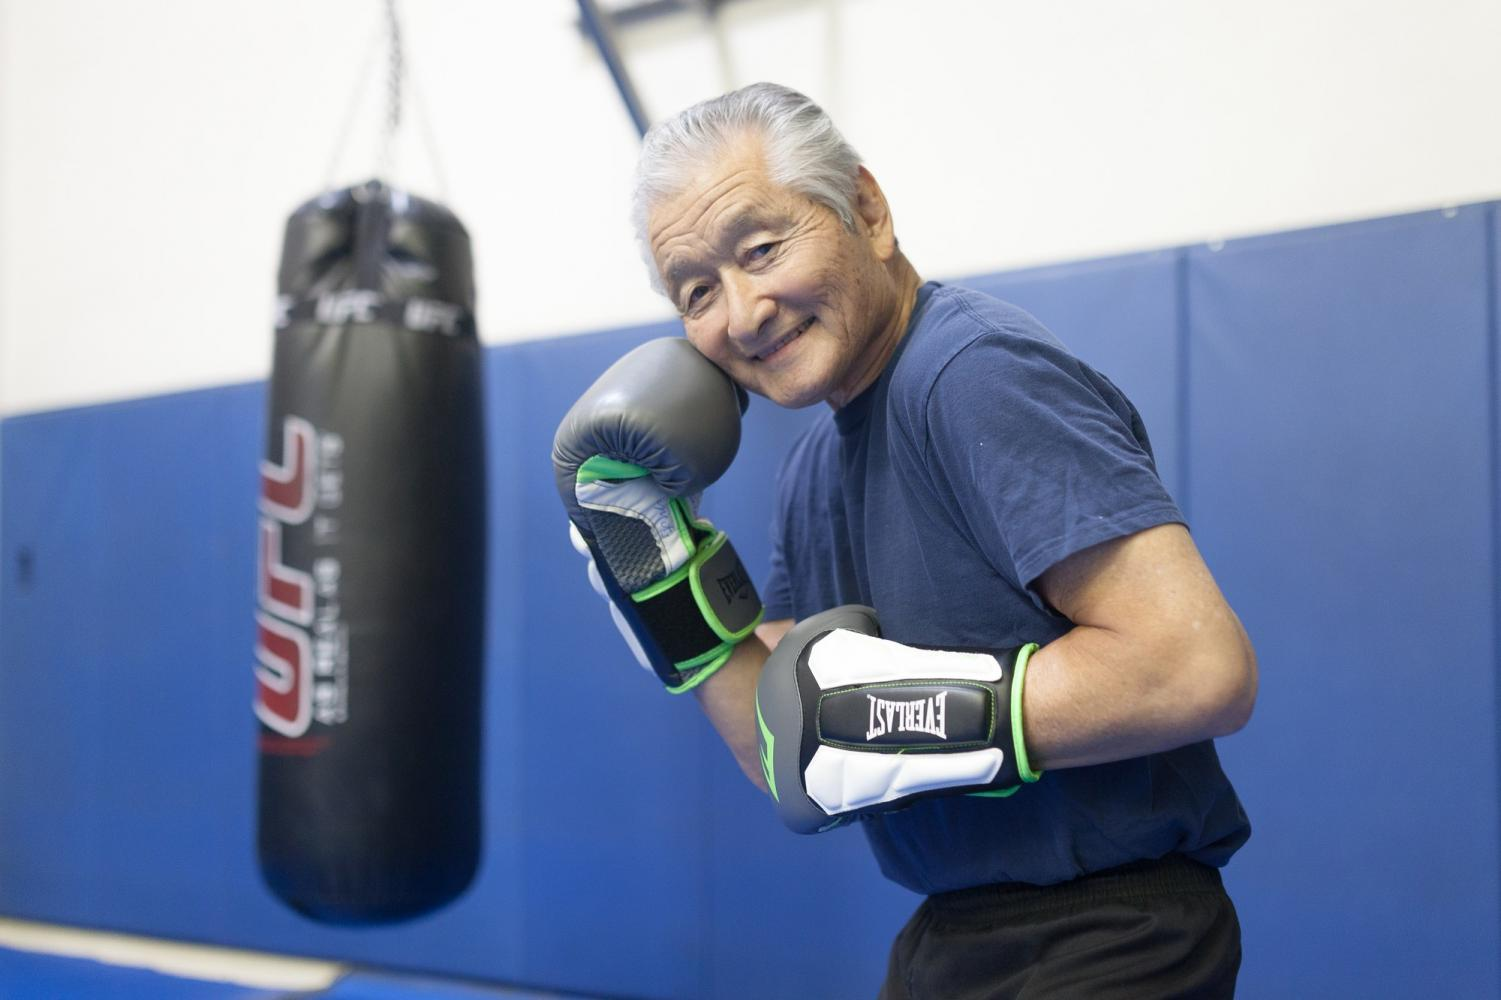 Mits Yamashita, 75, is a part-time boxing instructor, who first learned the art of jiu jitsu before becoming prolific in boxing training with the likes of Chuck Norris and Bruce Lee.